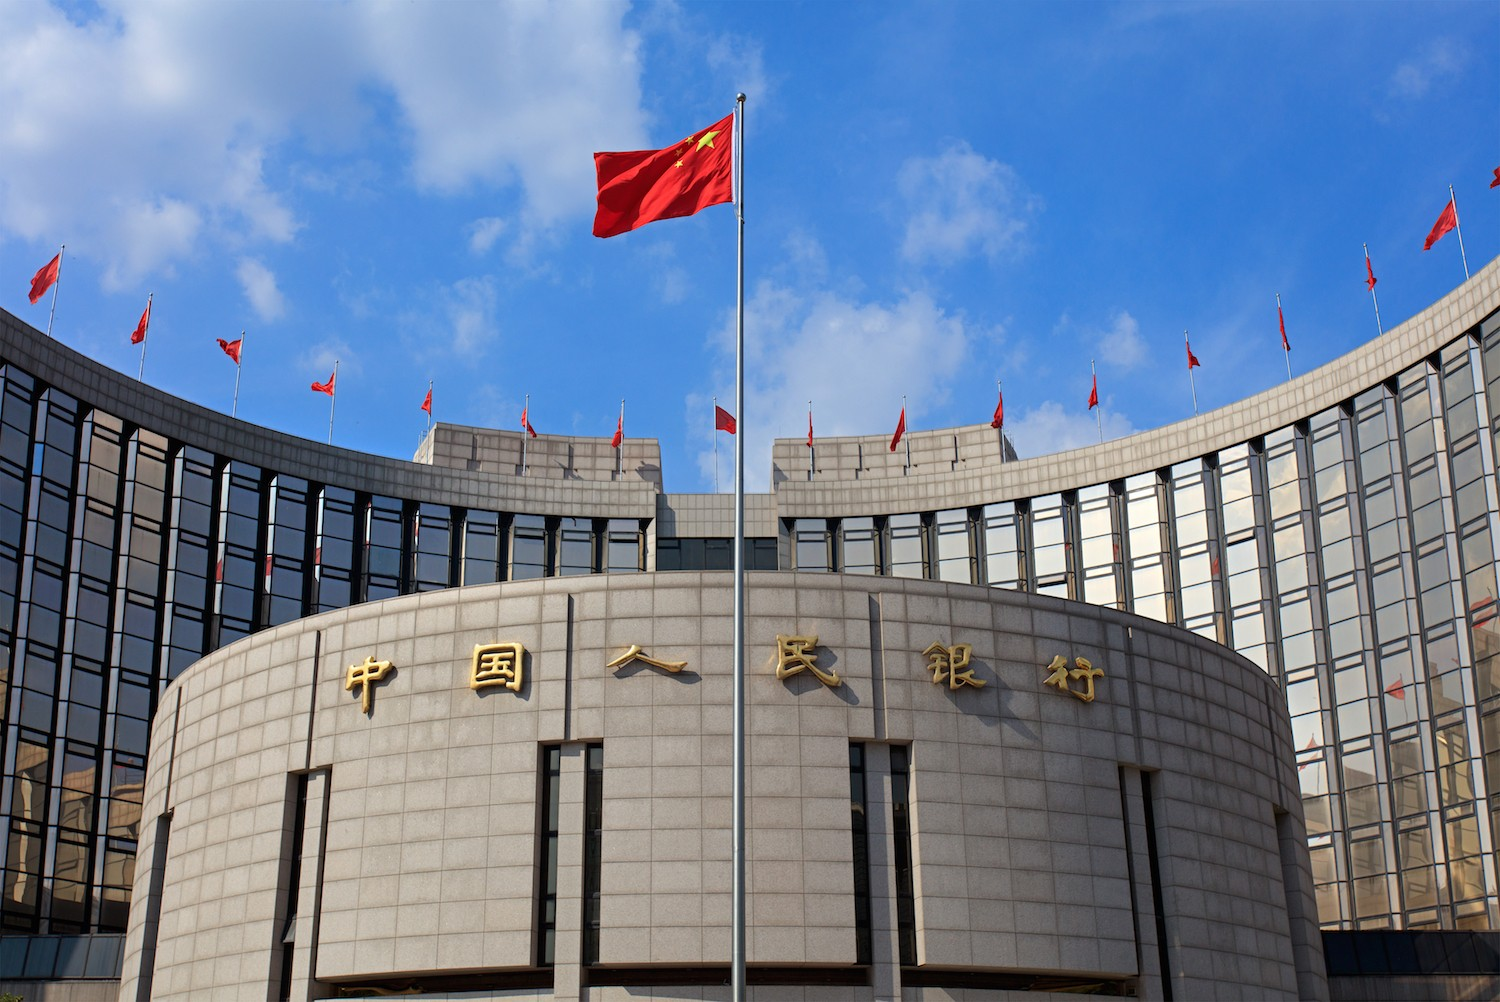 http://www.coindesk.com/chinese-regulators-expected-release-bitcoin-exchange-rules-month/